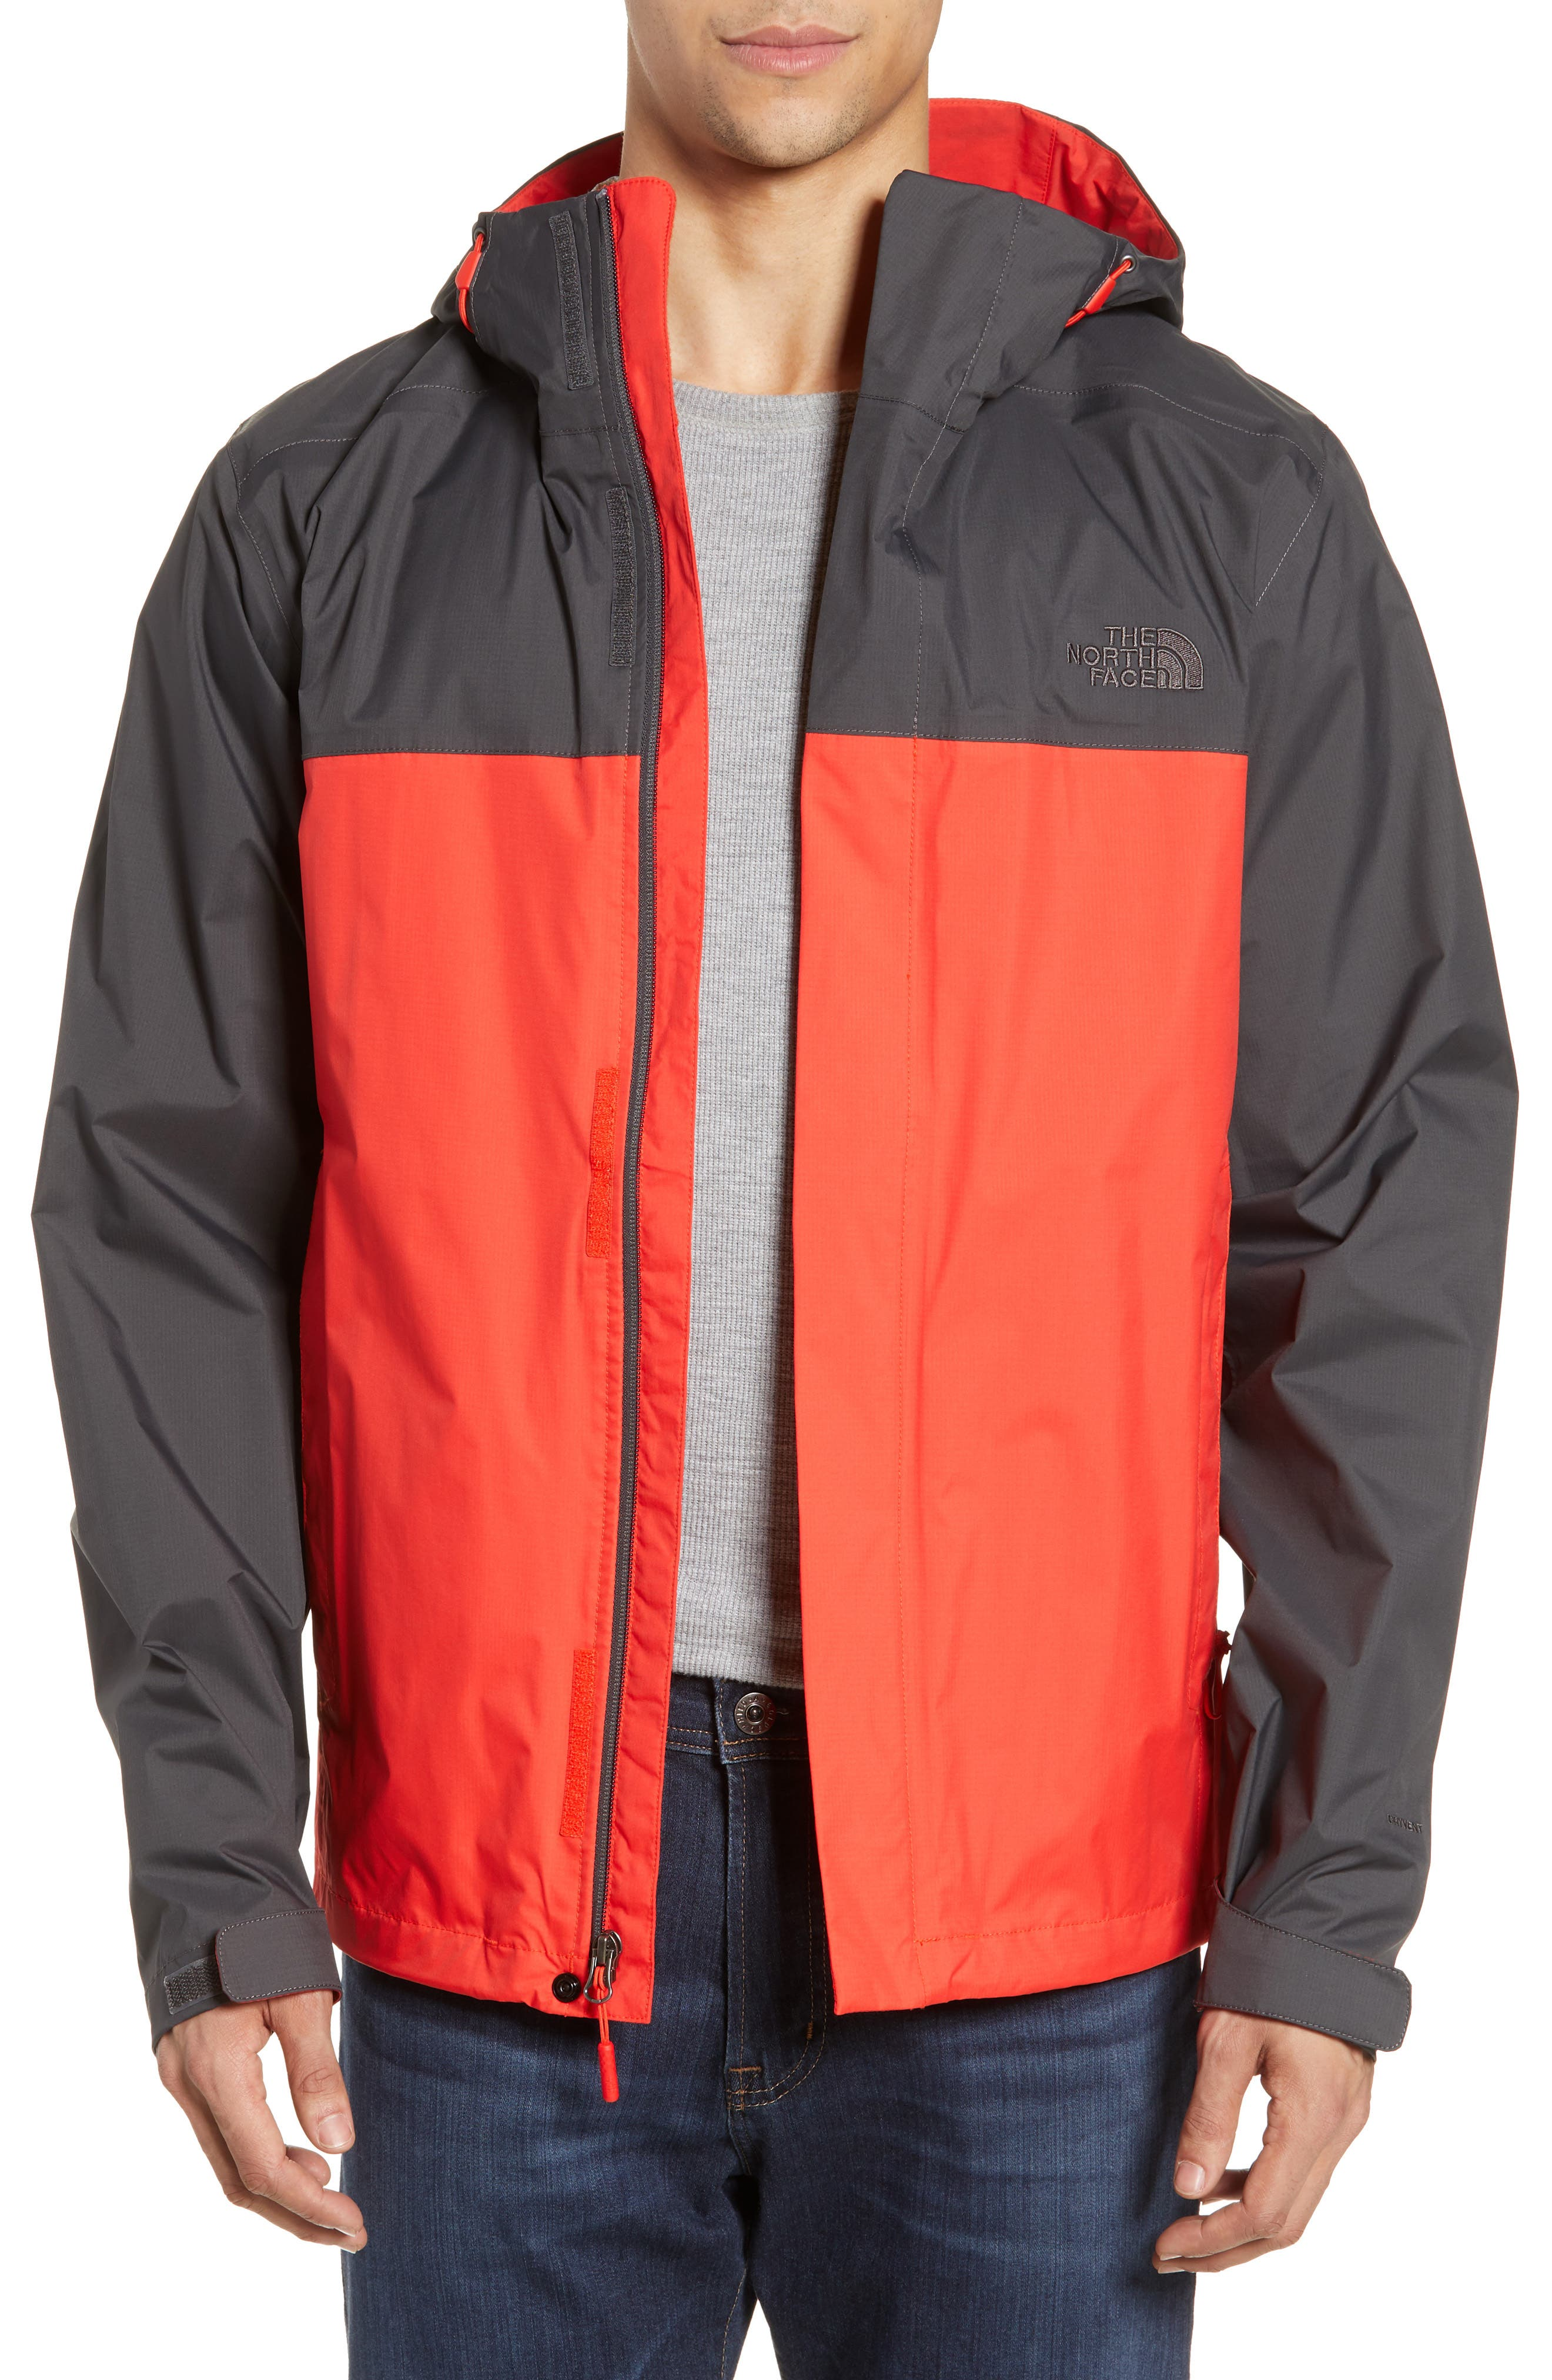 THE NORTH FACE, Venture II Raincoat, Main thumbnail 1, color, FIERY RED/ ASPHALT GREY